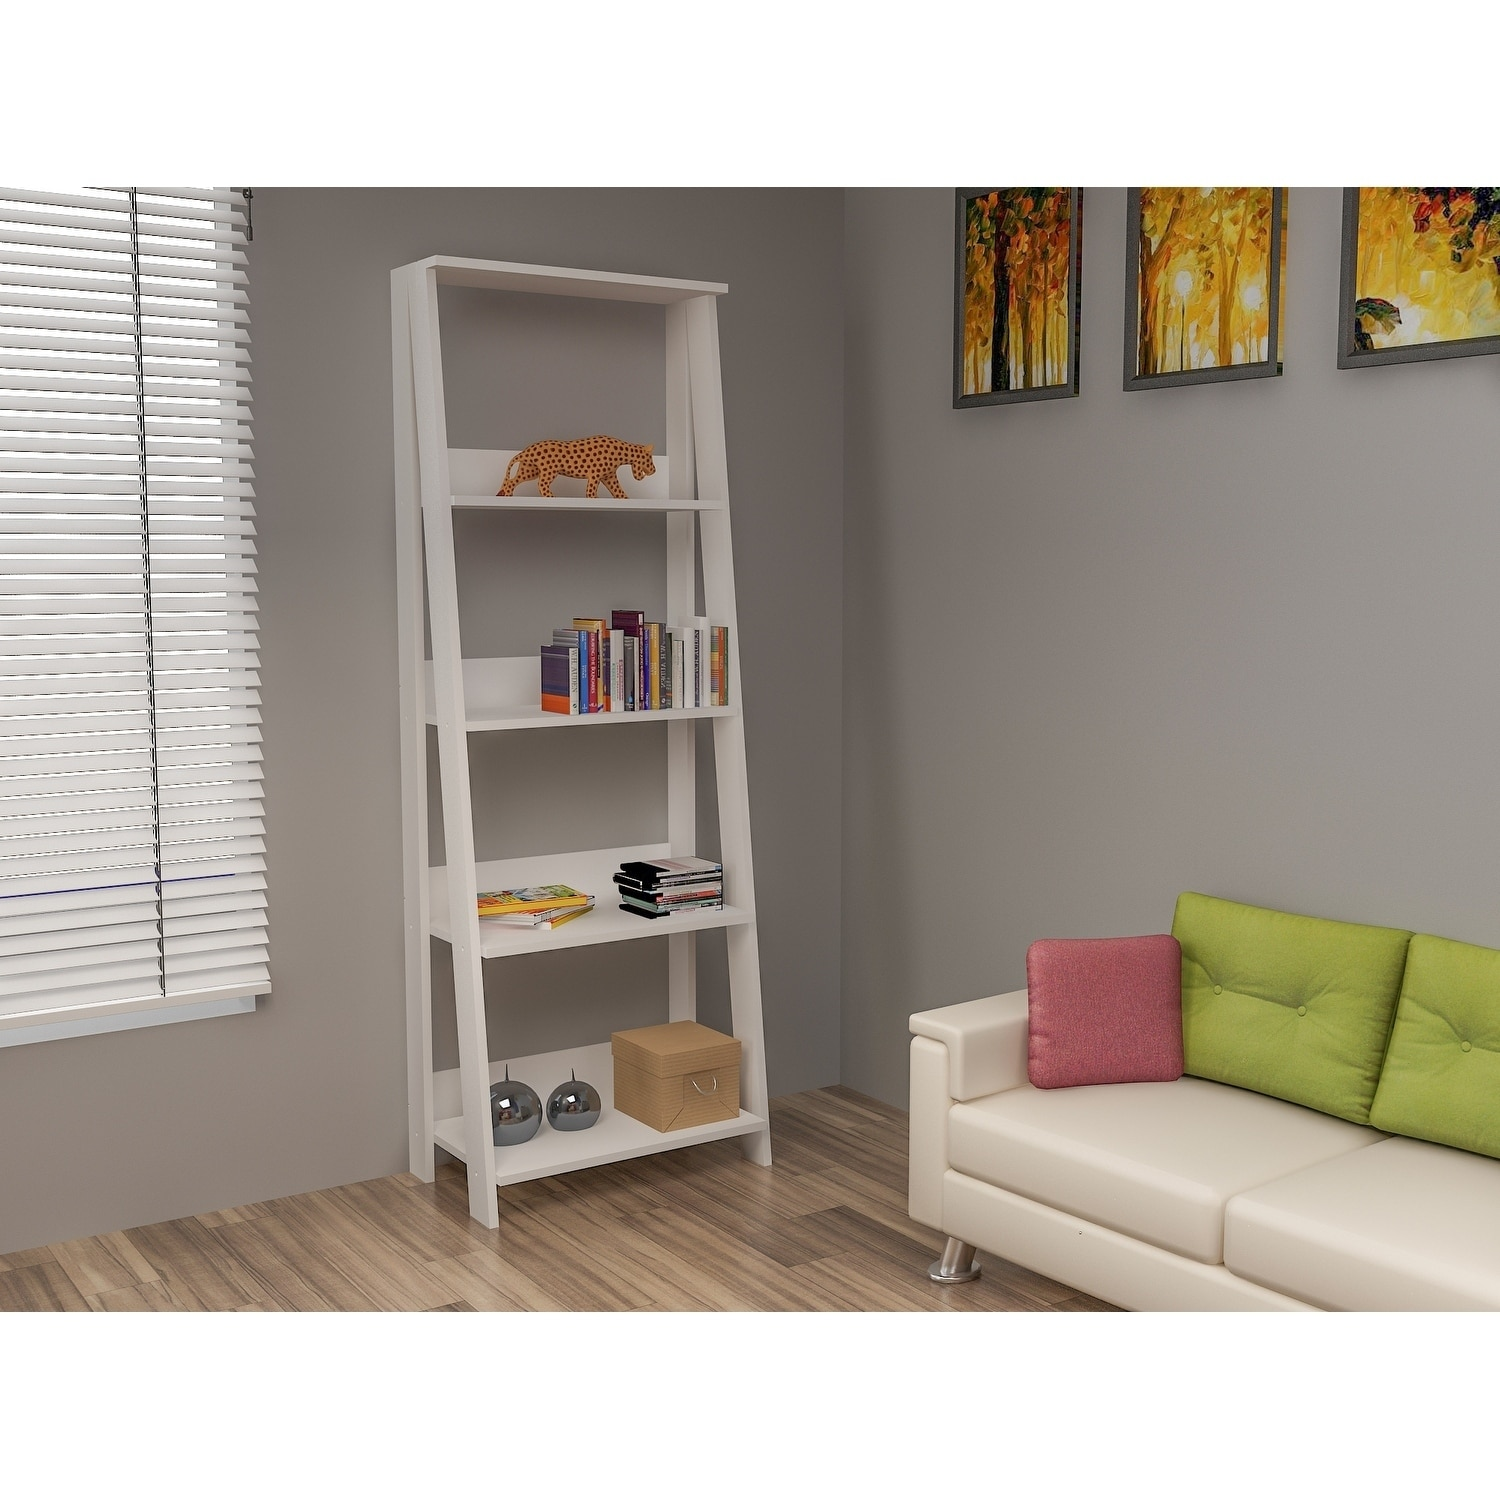 Decorotika Setre 71 4 Tier Floating Leaning Bookcase 23 Inch Wide